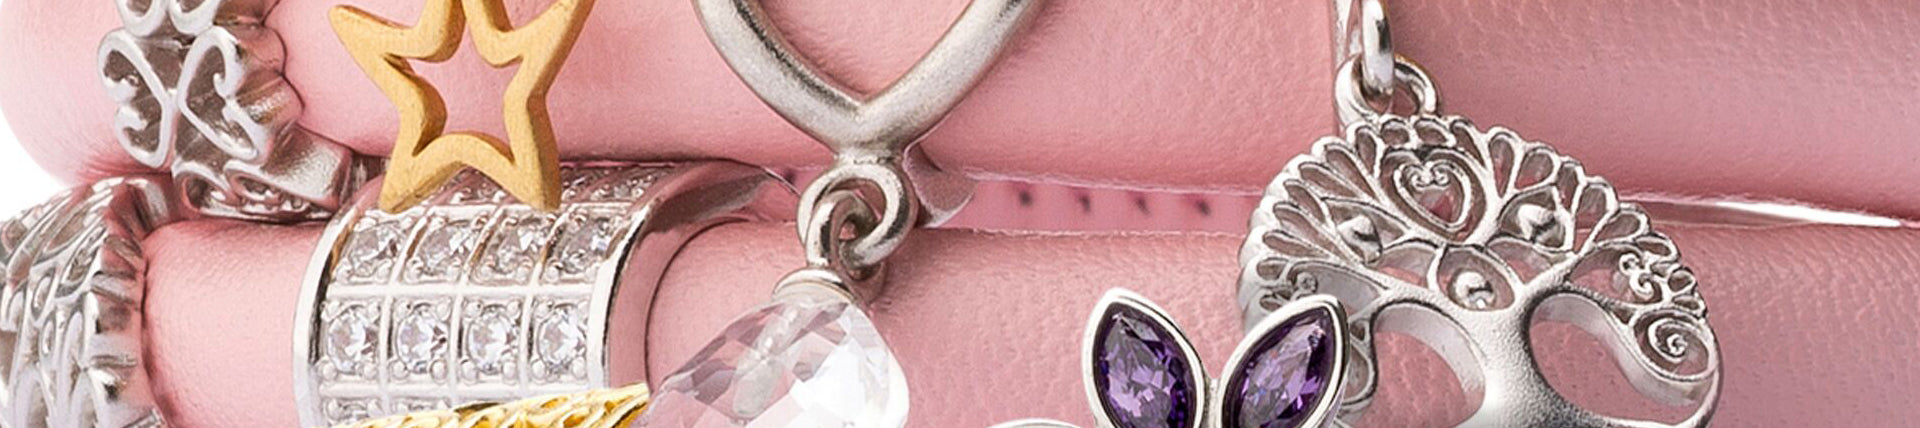 Endless Sterling Silver Charms and Leather Bracelets by Jennifer ...